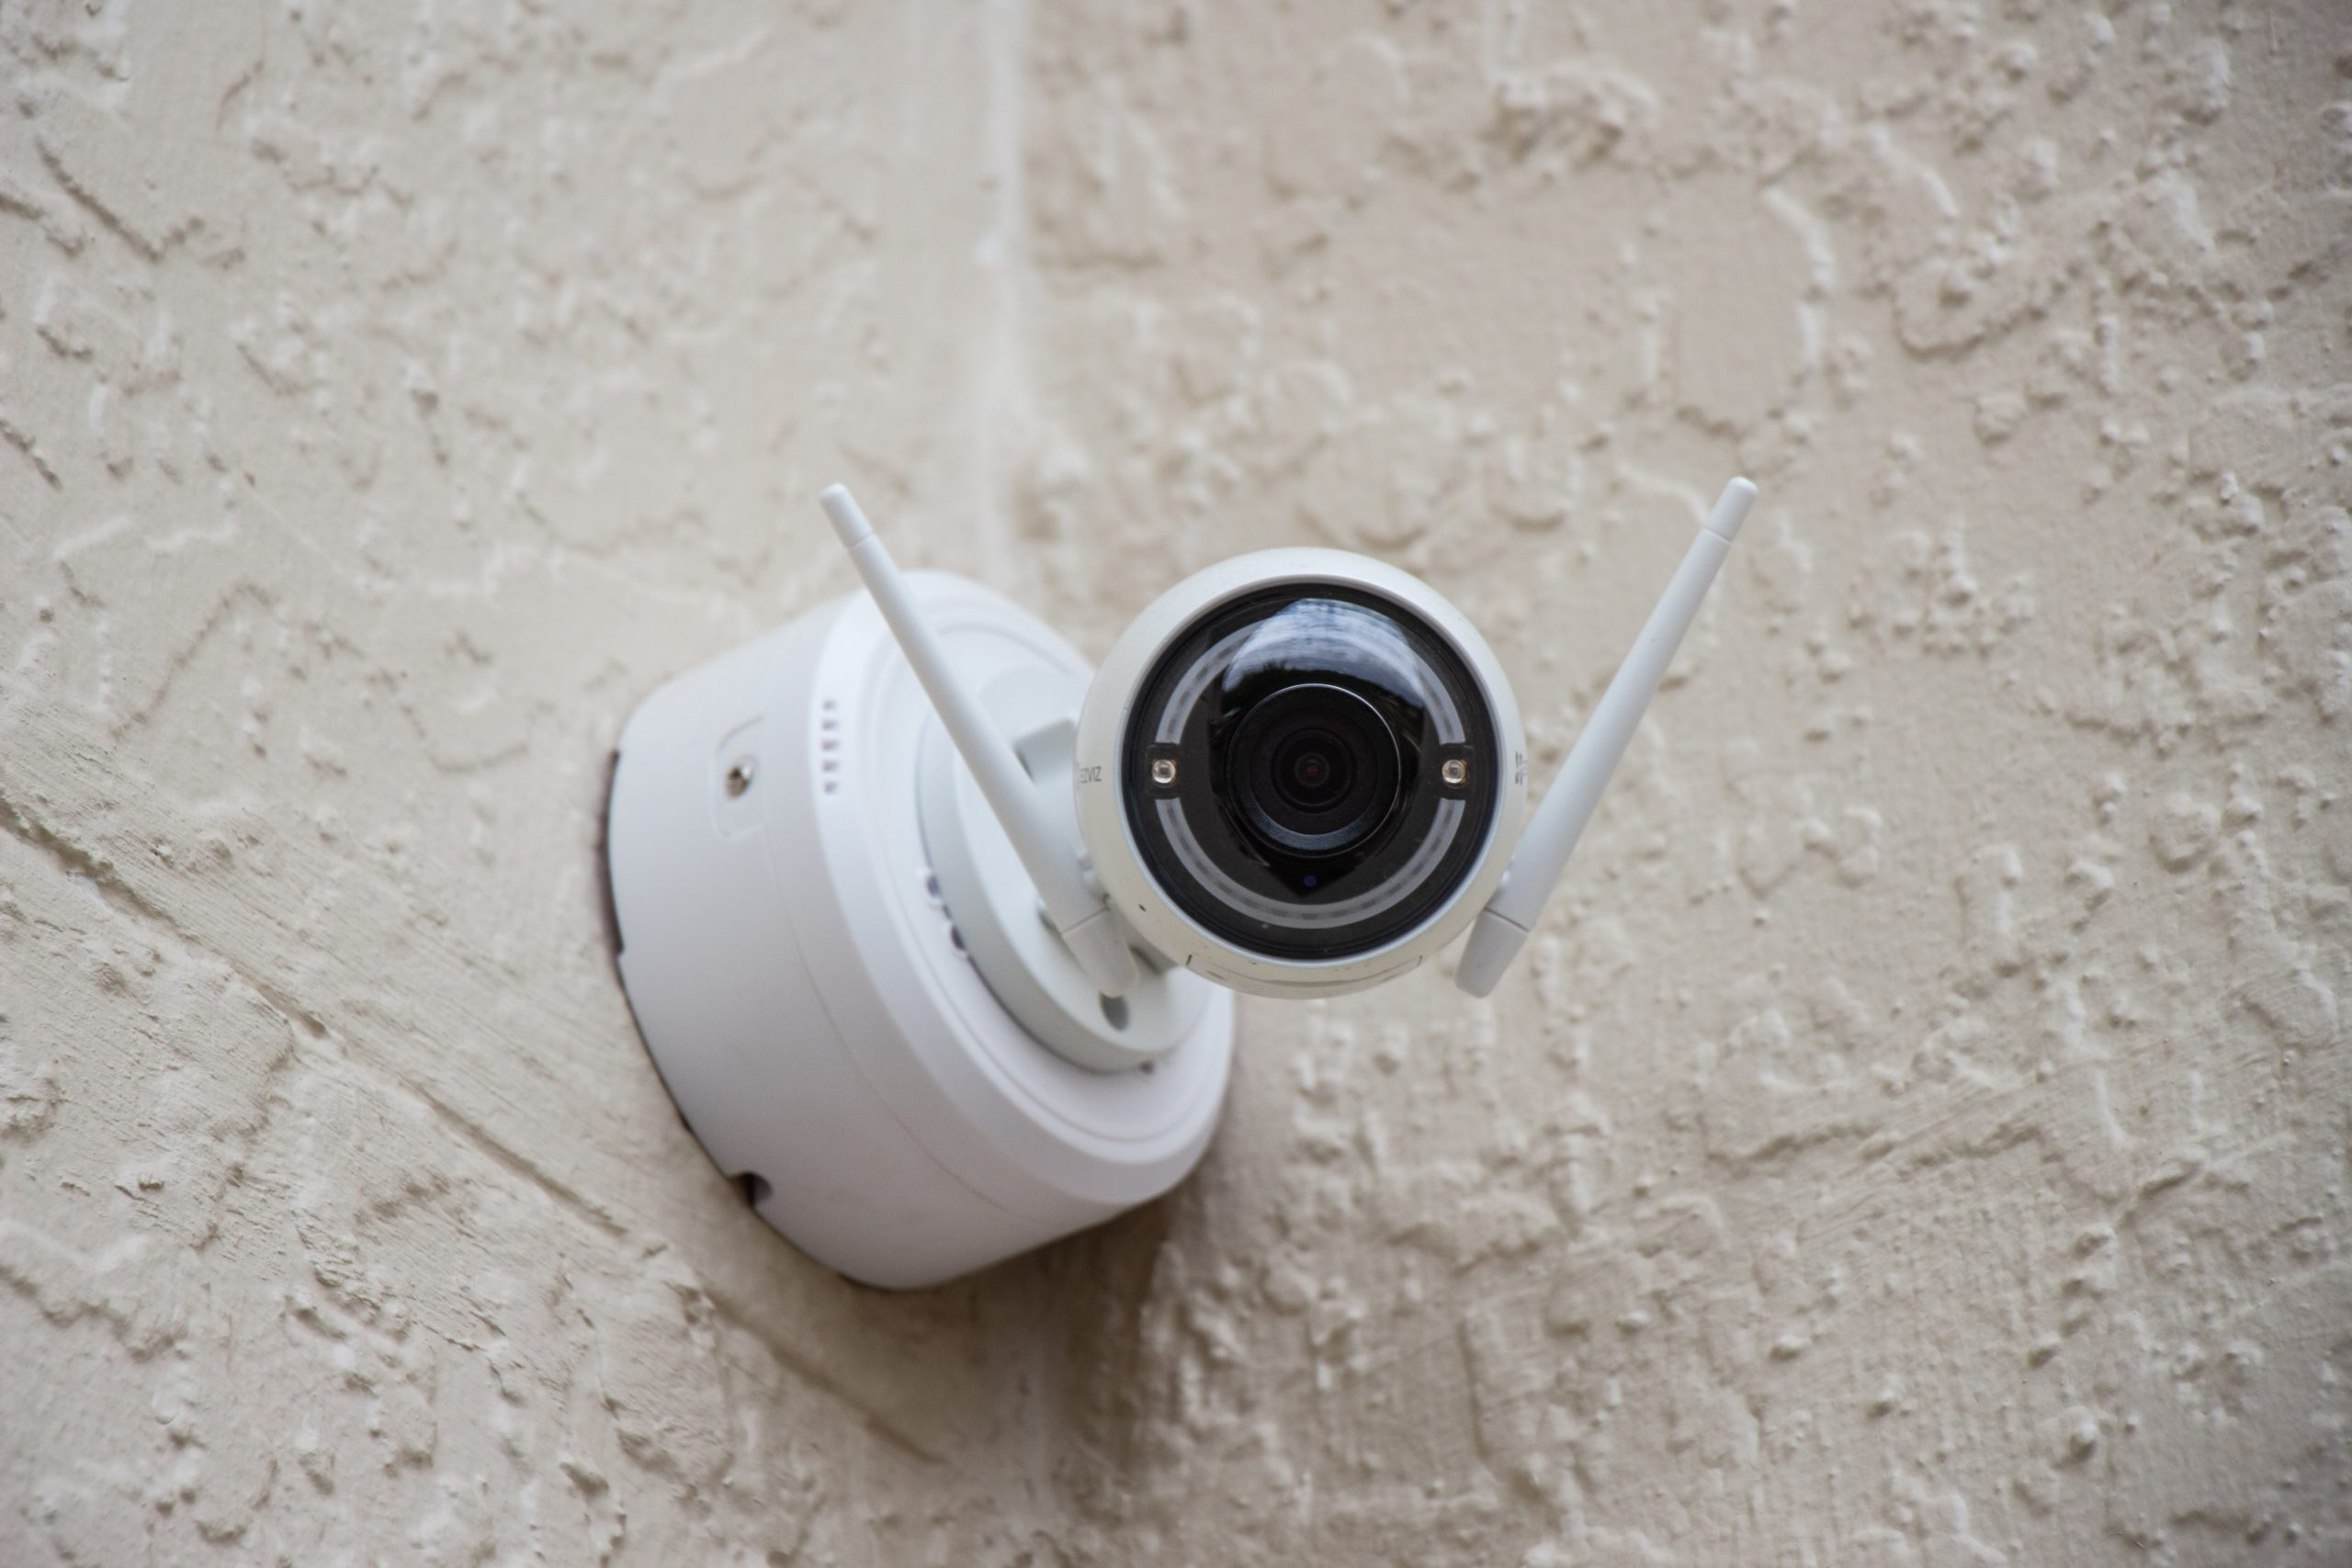 How To Start Costco Security Cameras With Less Than $100